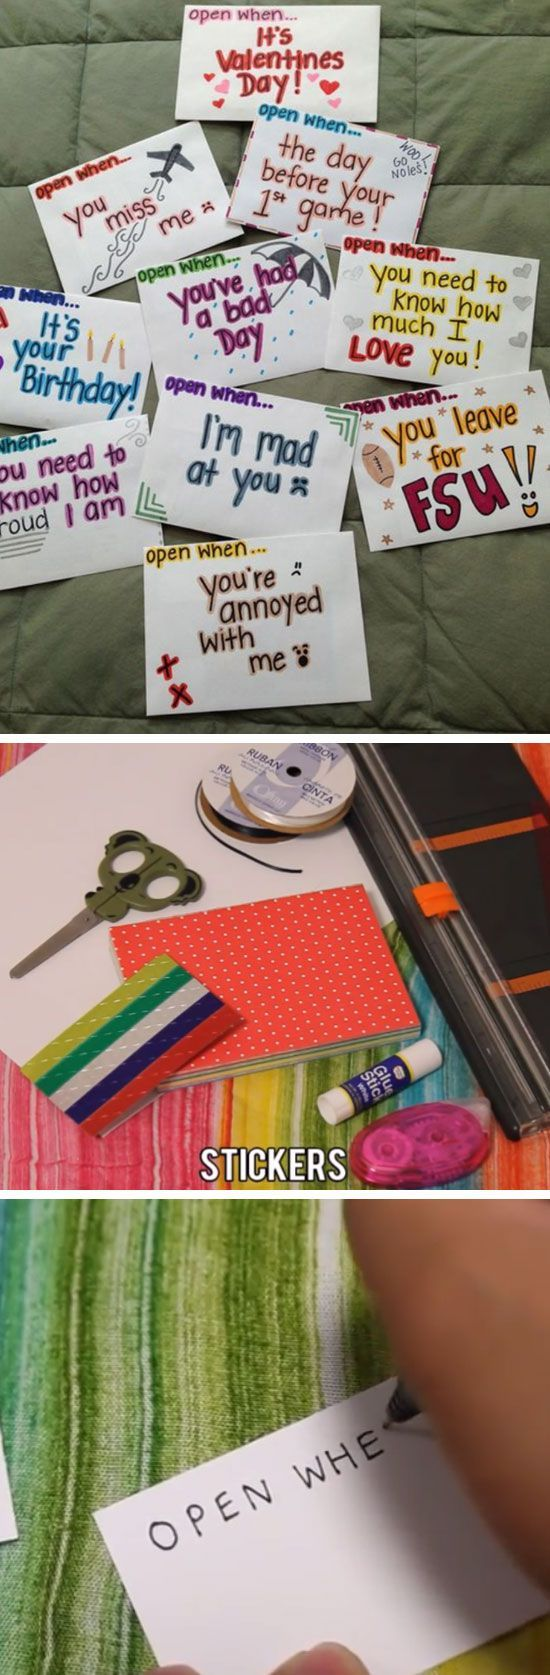 Best 25 diy boyfriend gifts ideas on pinterest welcome home best 25 diy boyfriend gifts ideas on pinterest welcome home ideas for boyfriend boyfriend crafts and valentines day messages negle Image collections